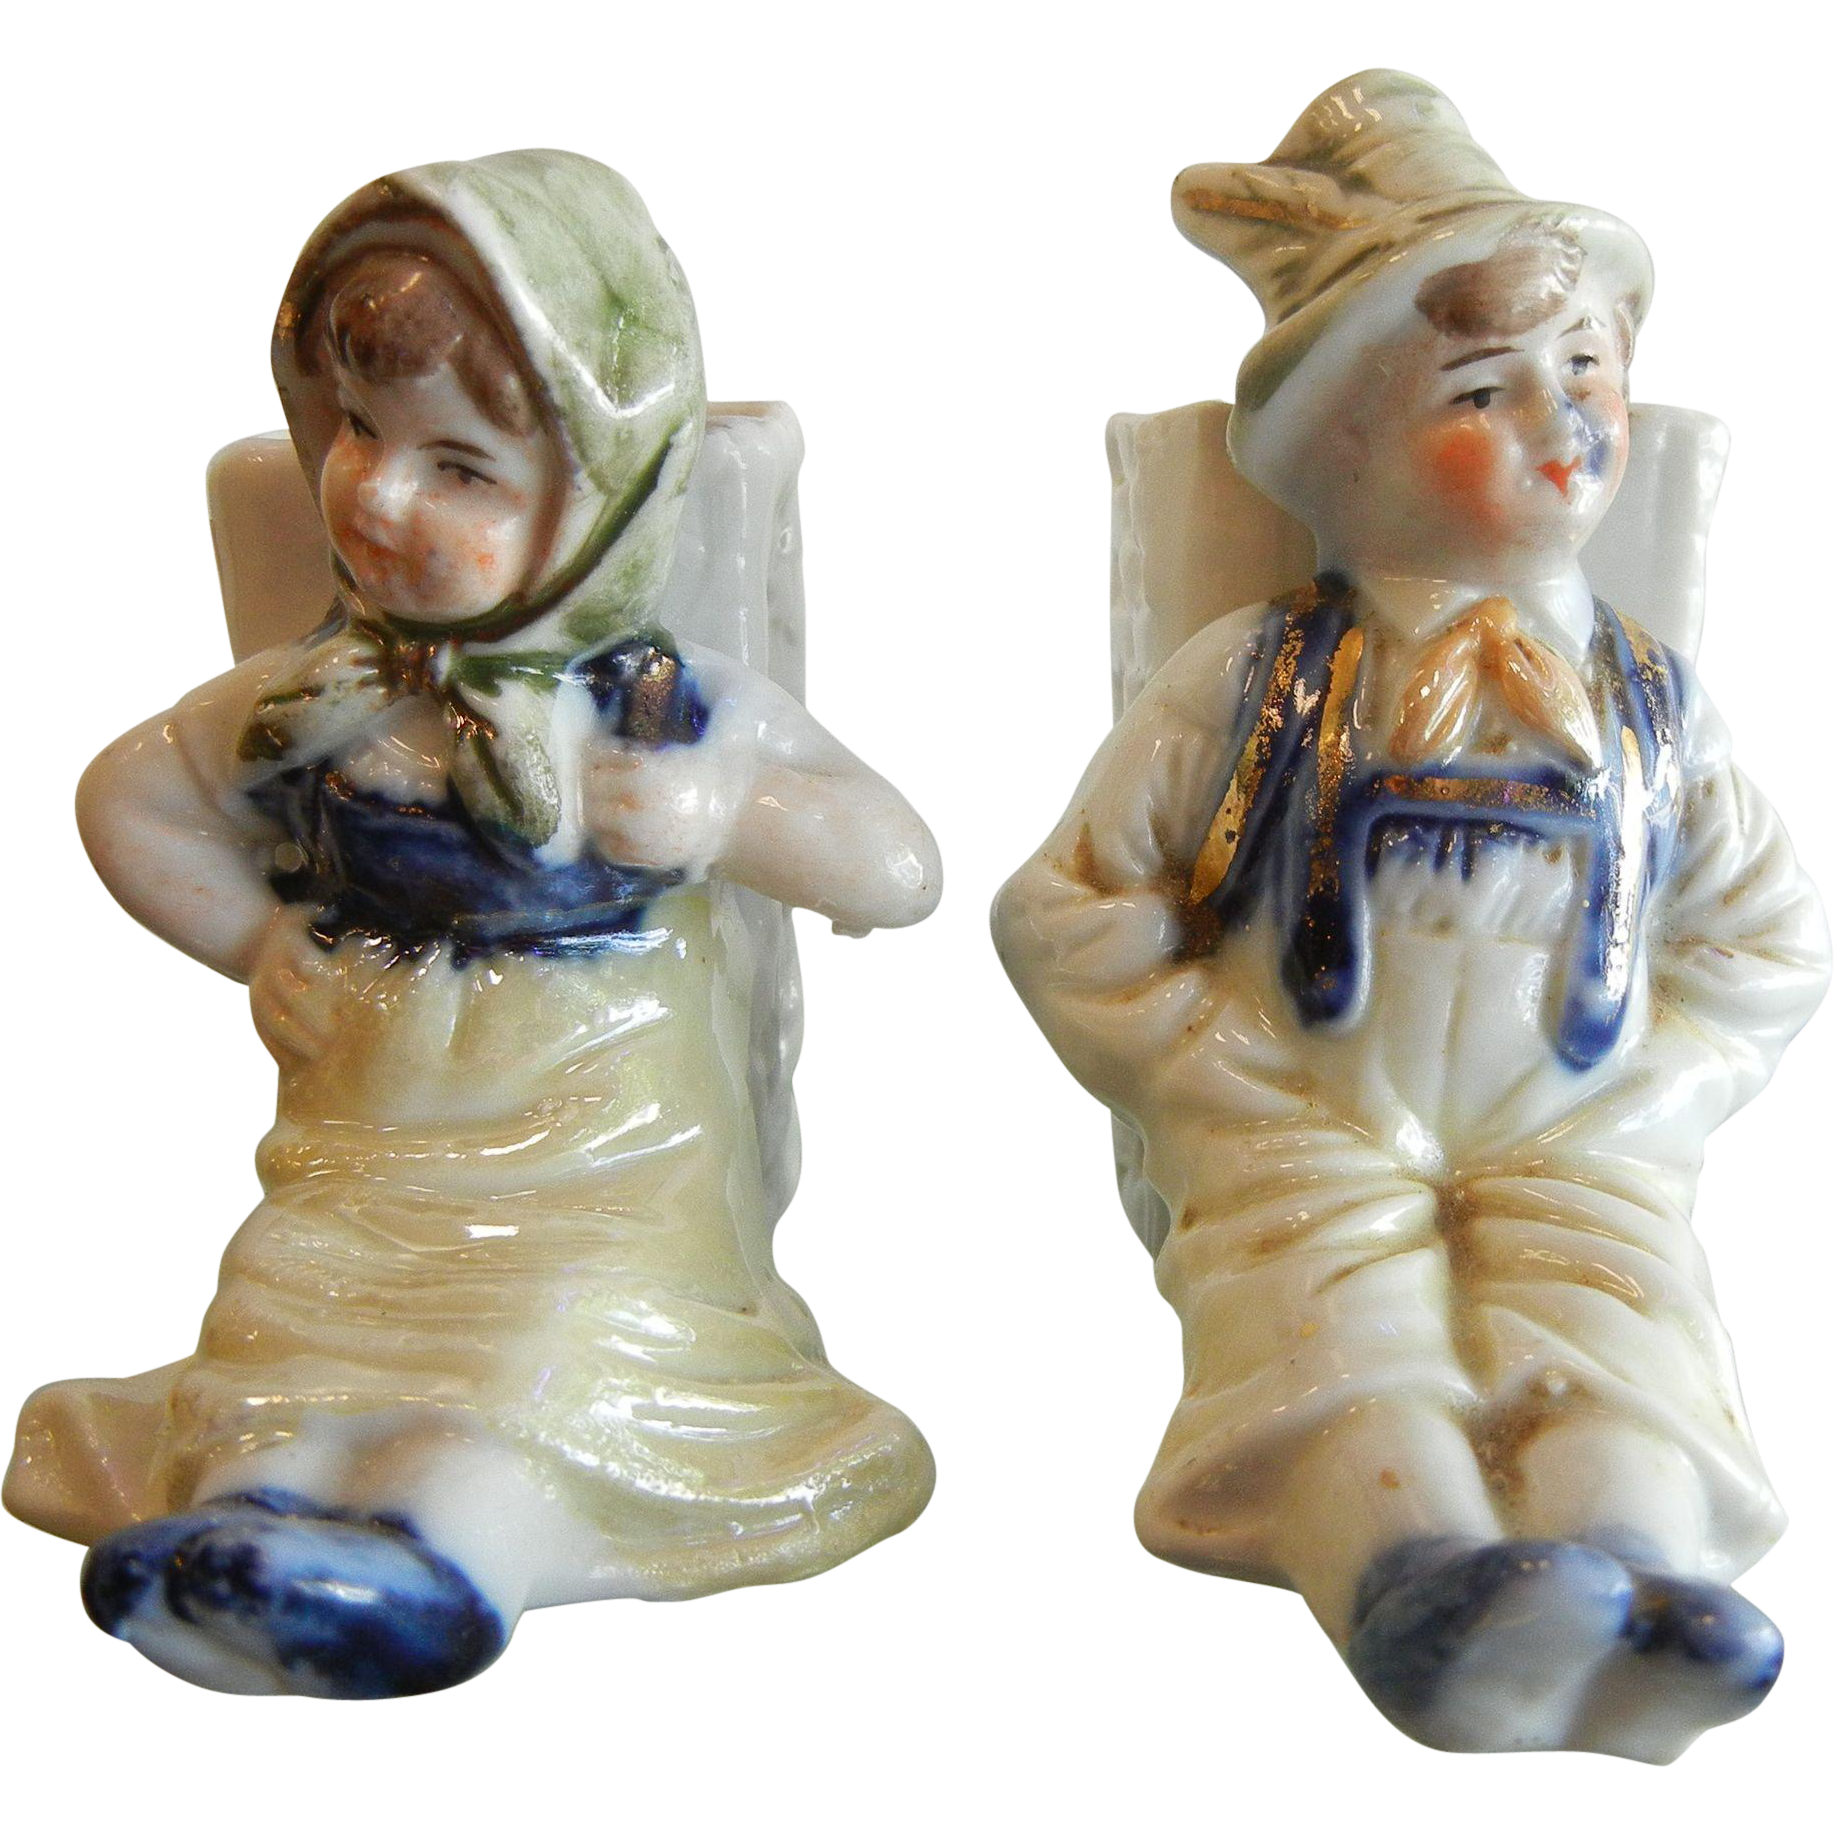 Vintage Porcelain Boy & Girl Book Rest or Vase Type Figurines